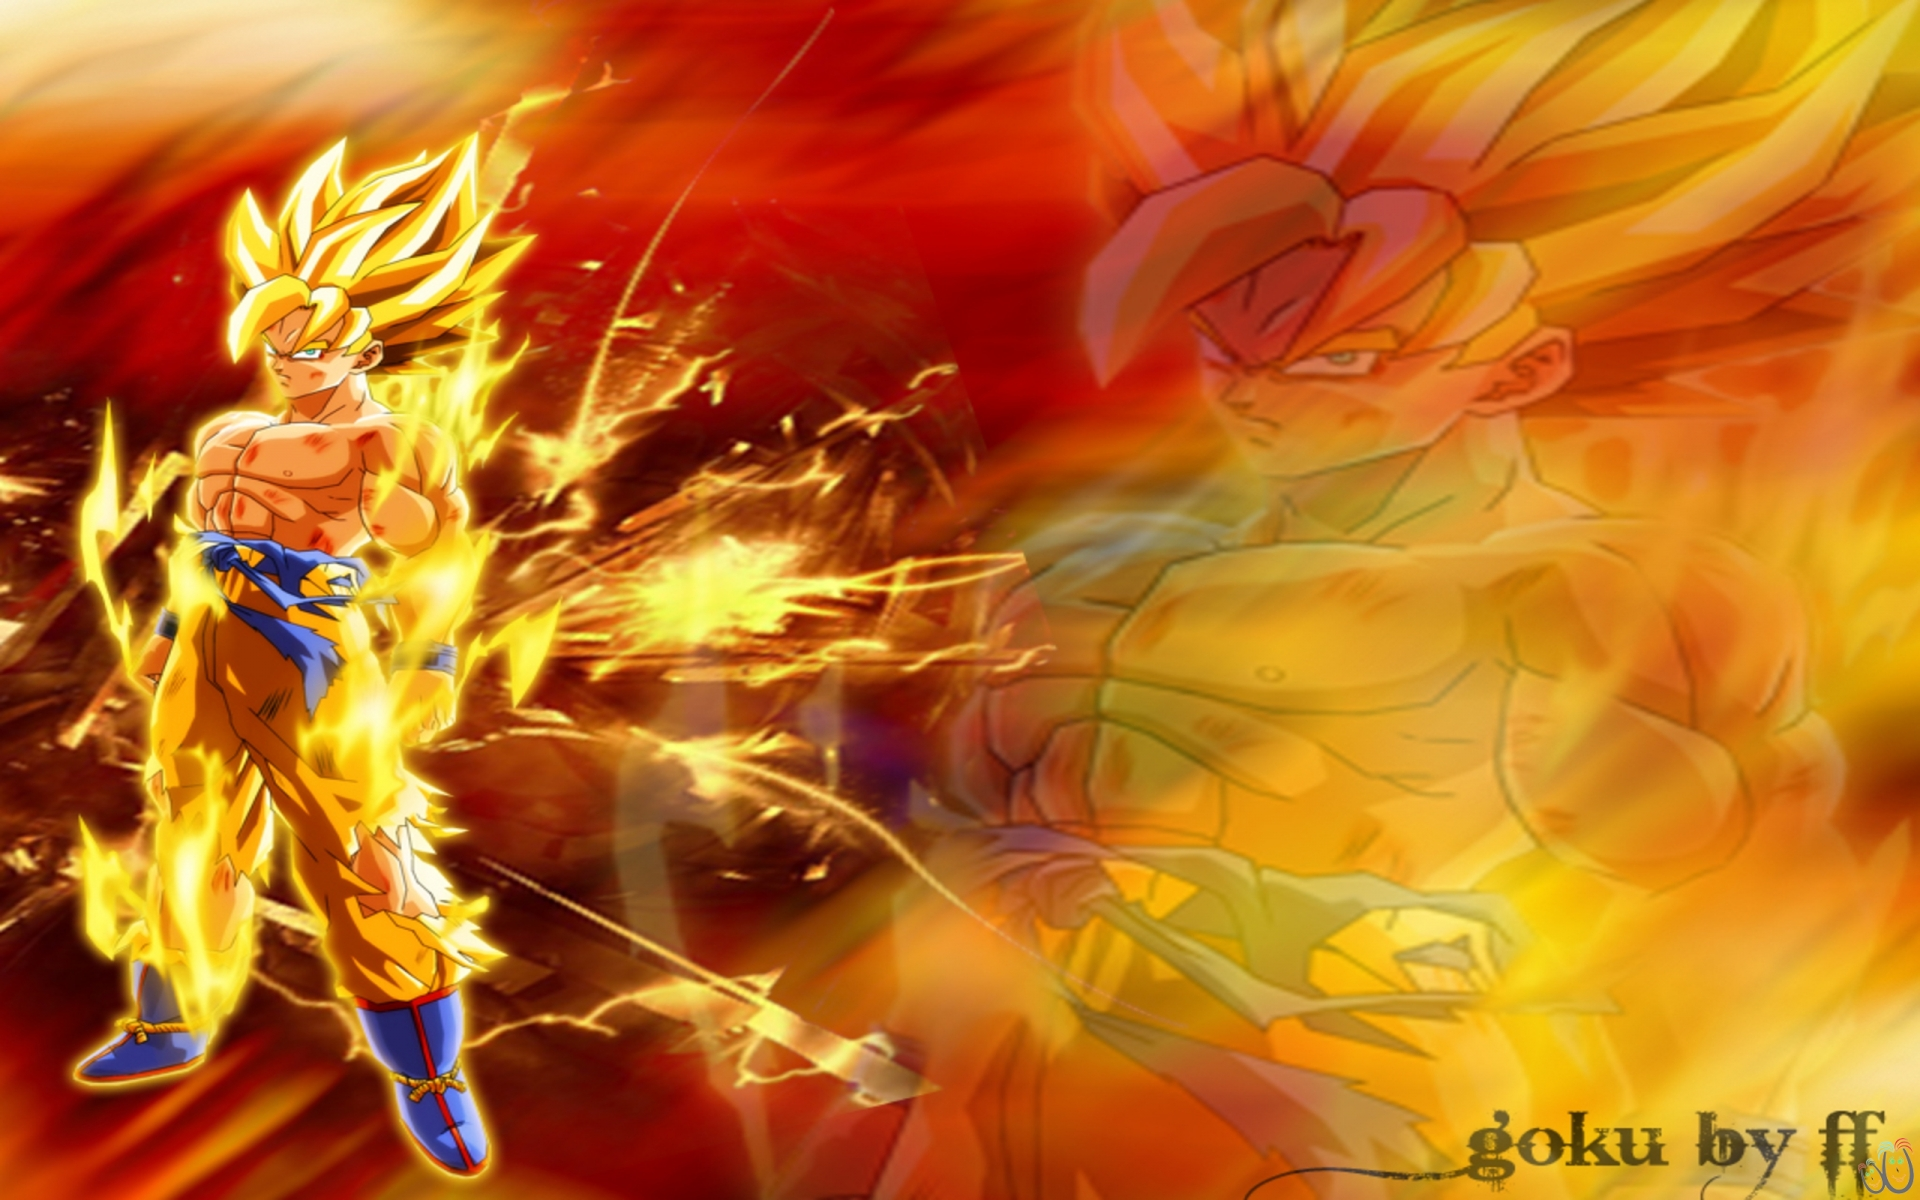 Dragon ball z goku wallpapers high quality download free - Hd dragon ball z images ...